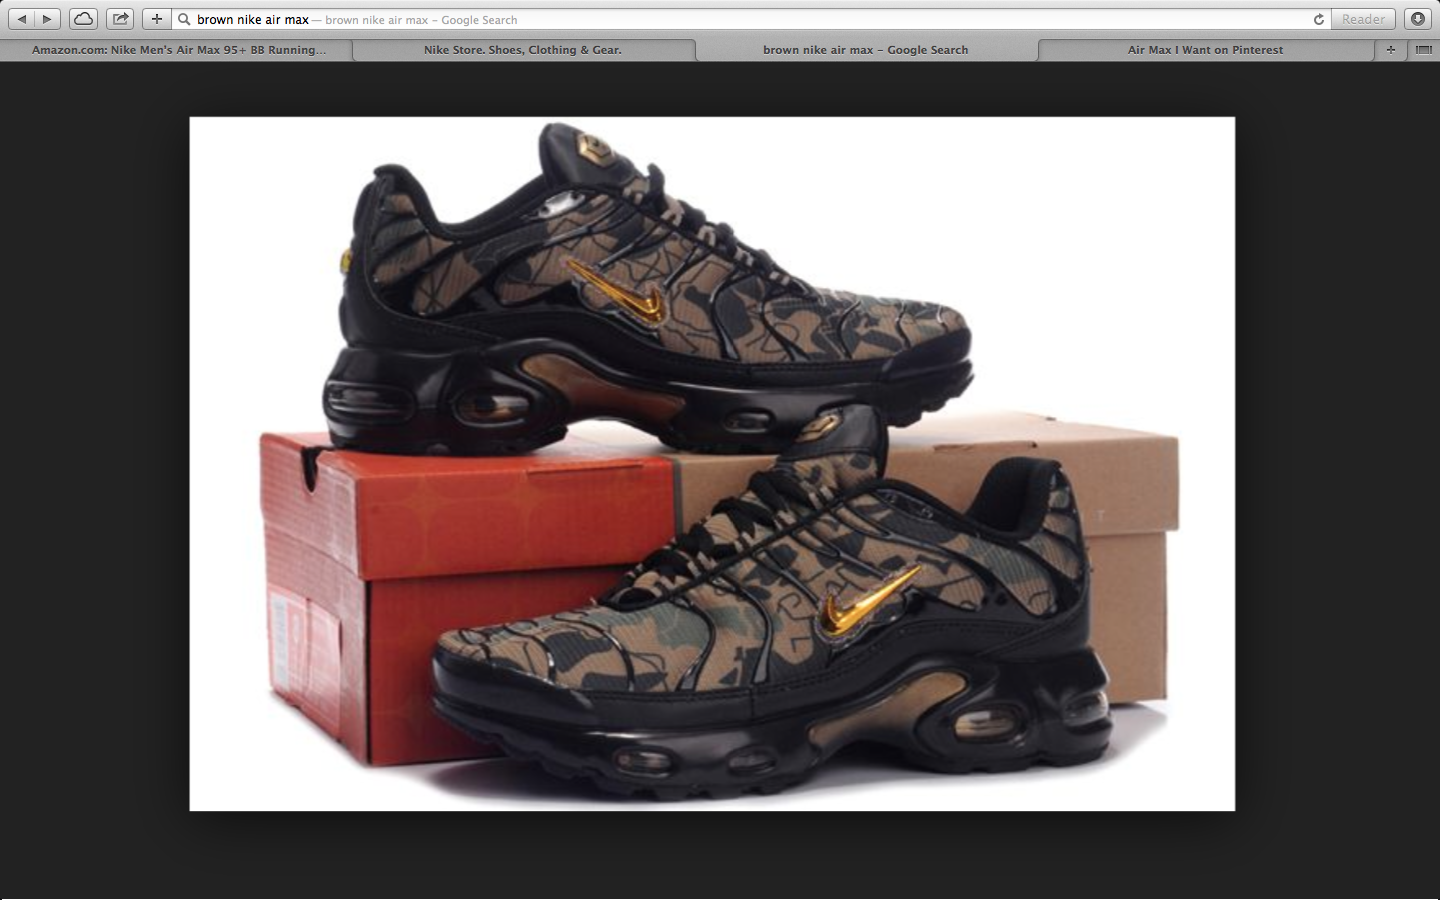 sale retailer 82a6d a5e53 ... official store camo air max tn men in black black gold nike air max tn  3226f